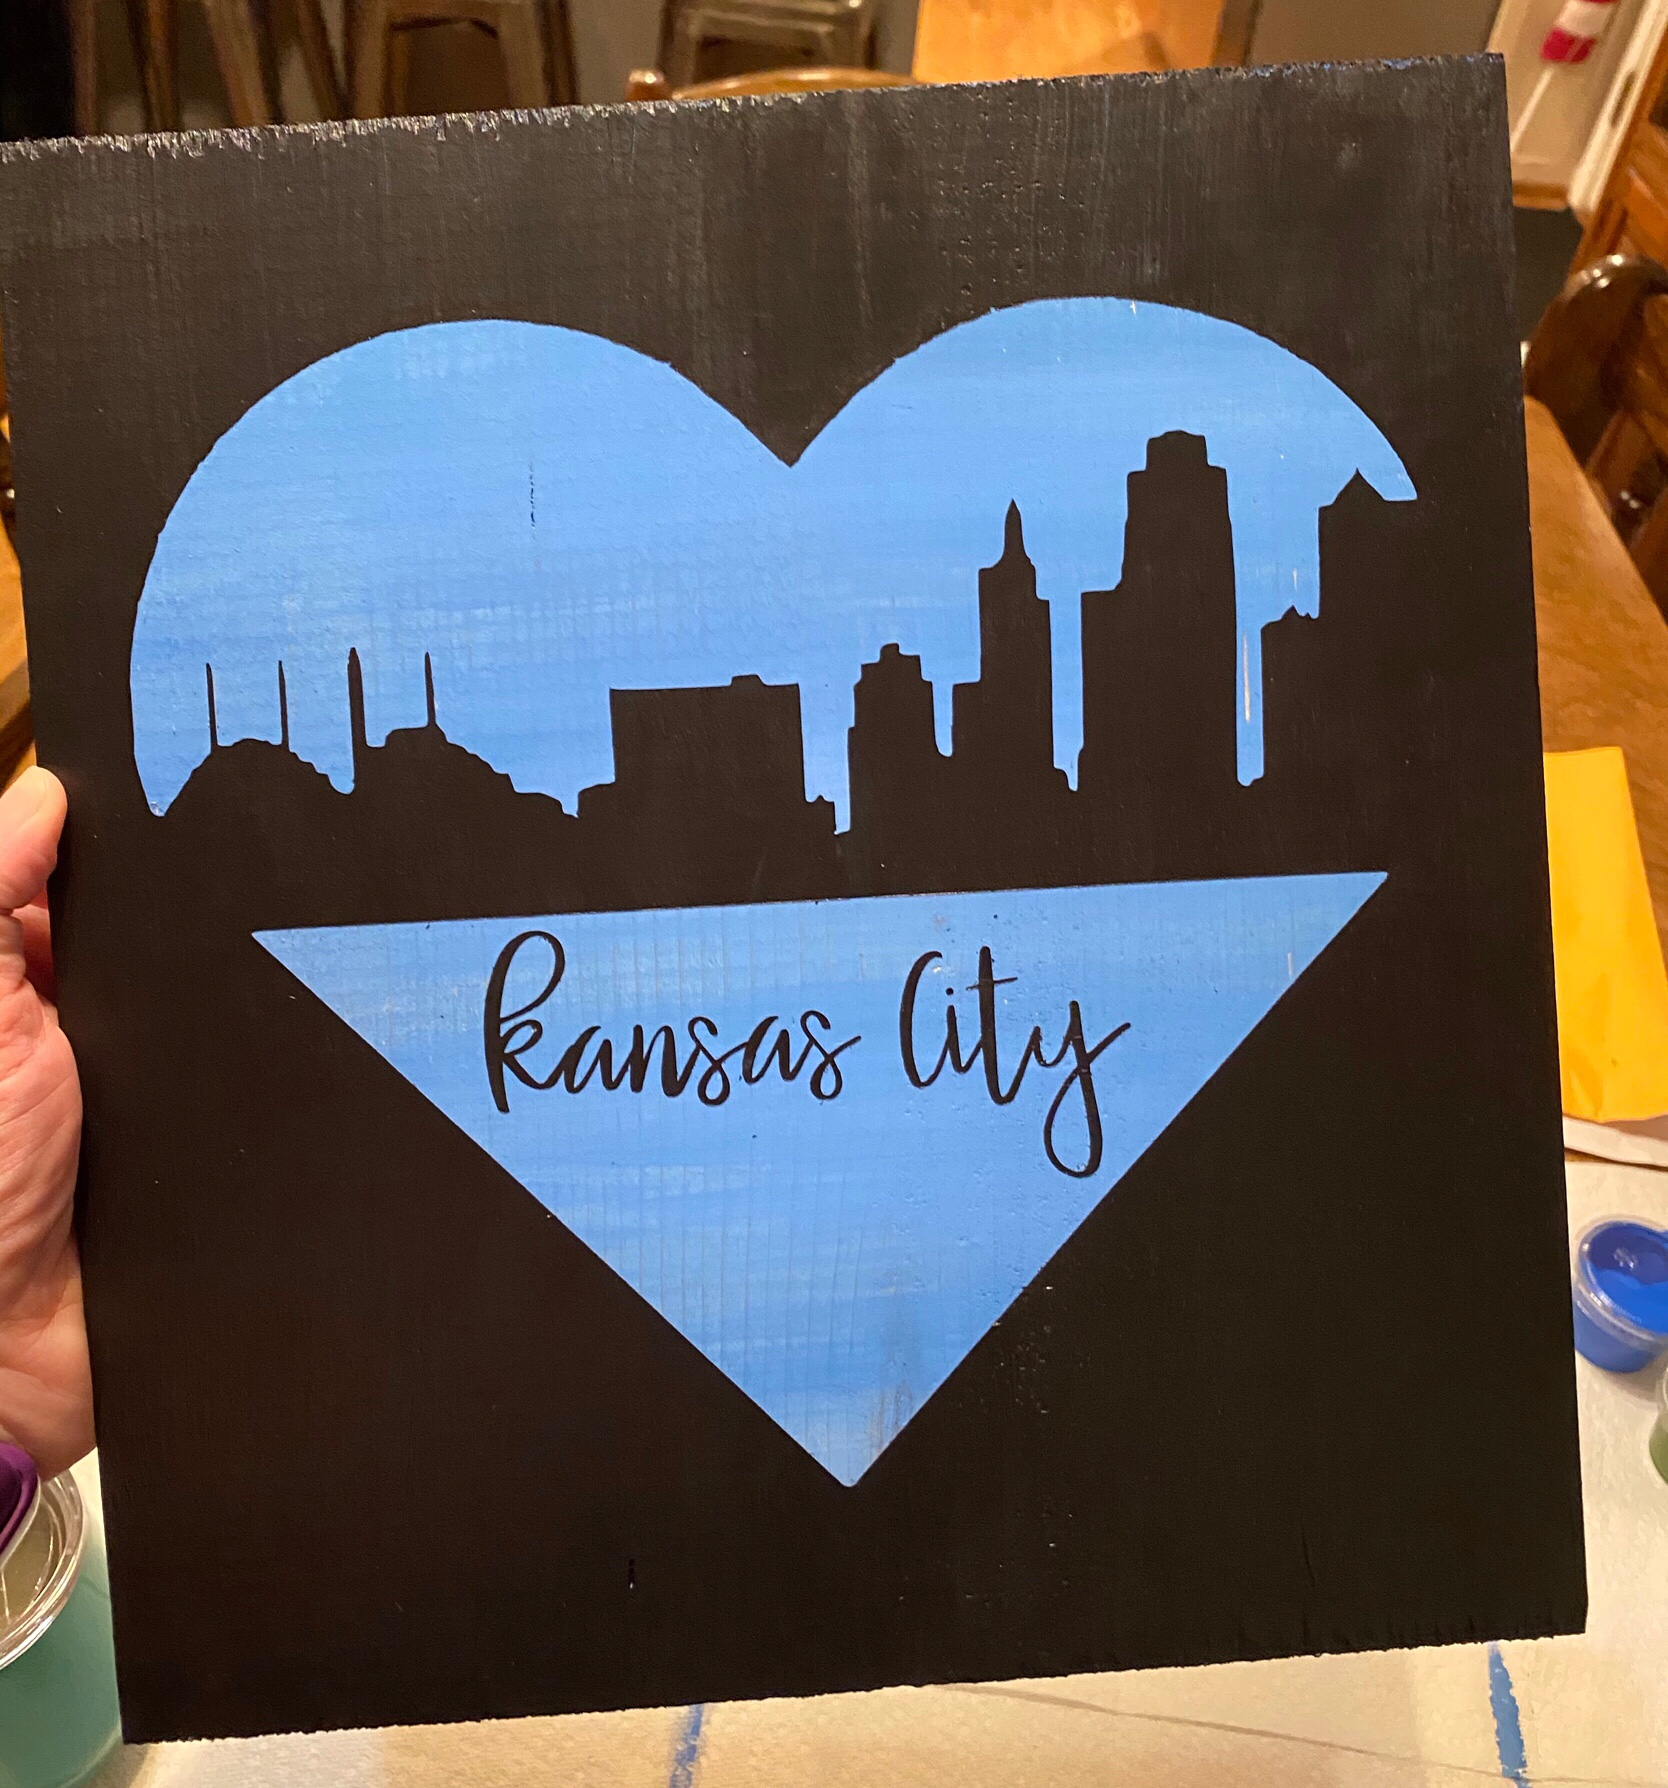 Painting of a heart with Kansas City skyline